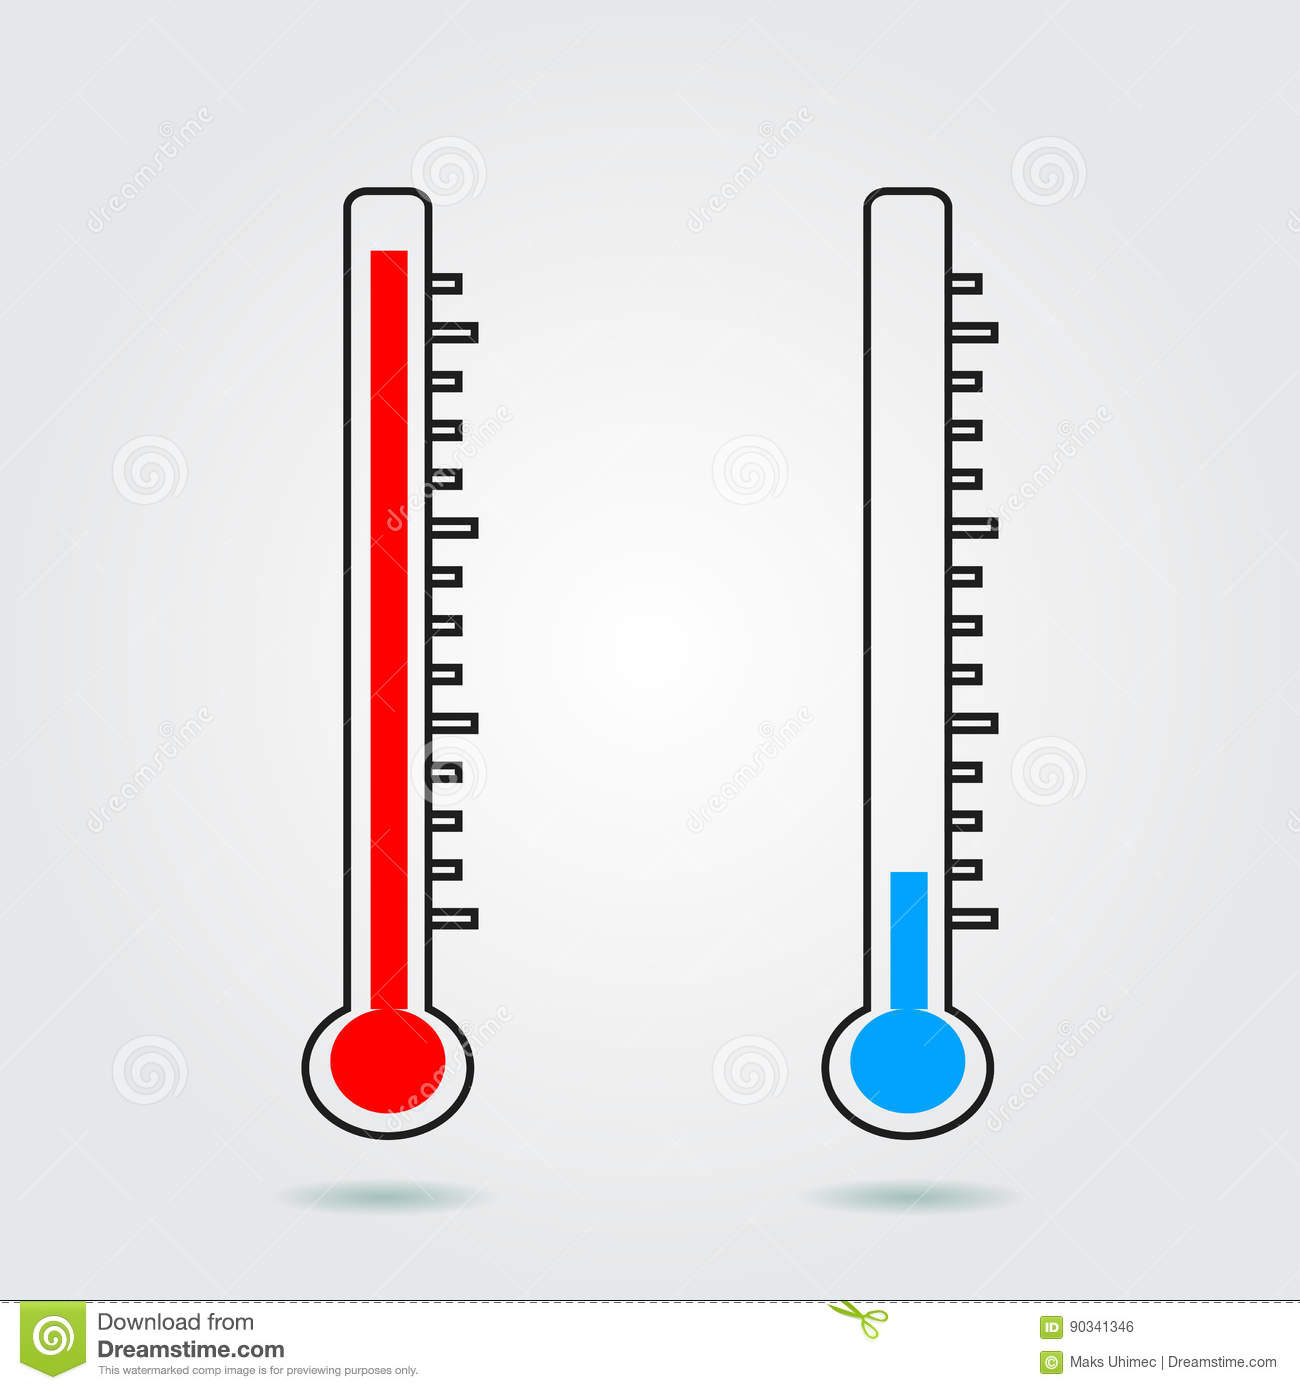 Celsius Only Thermometer | www.pixshark.com - Images ...